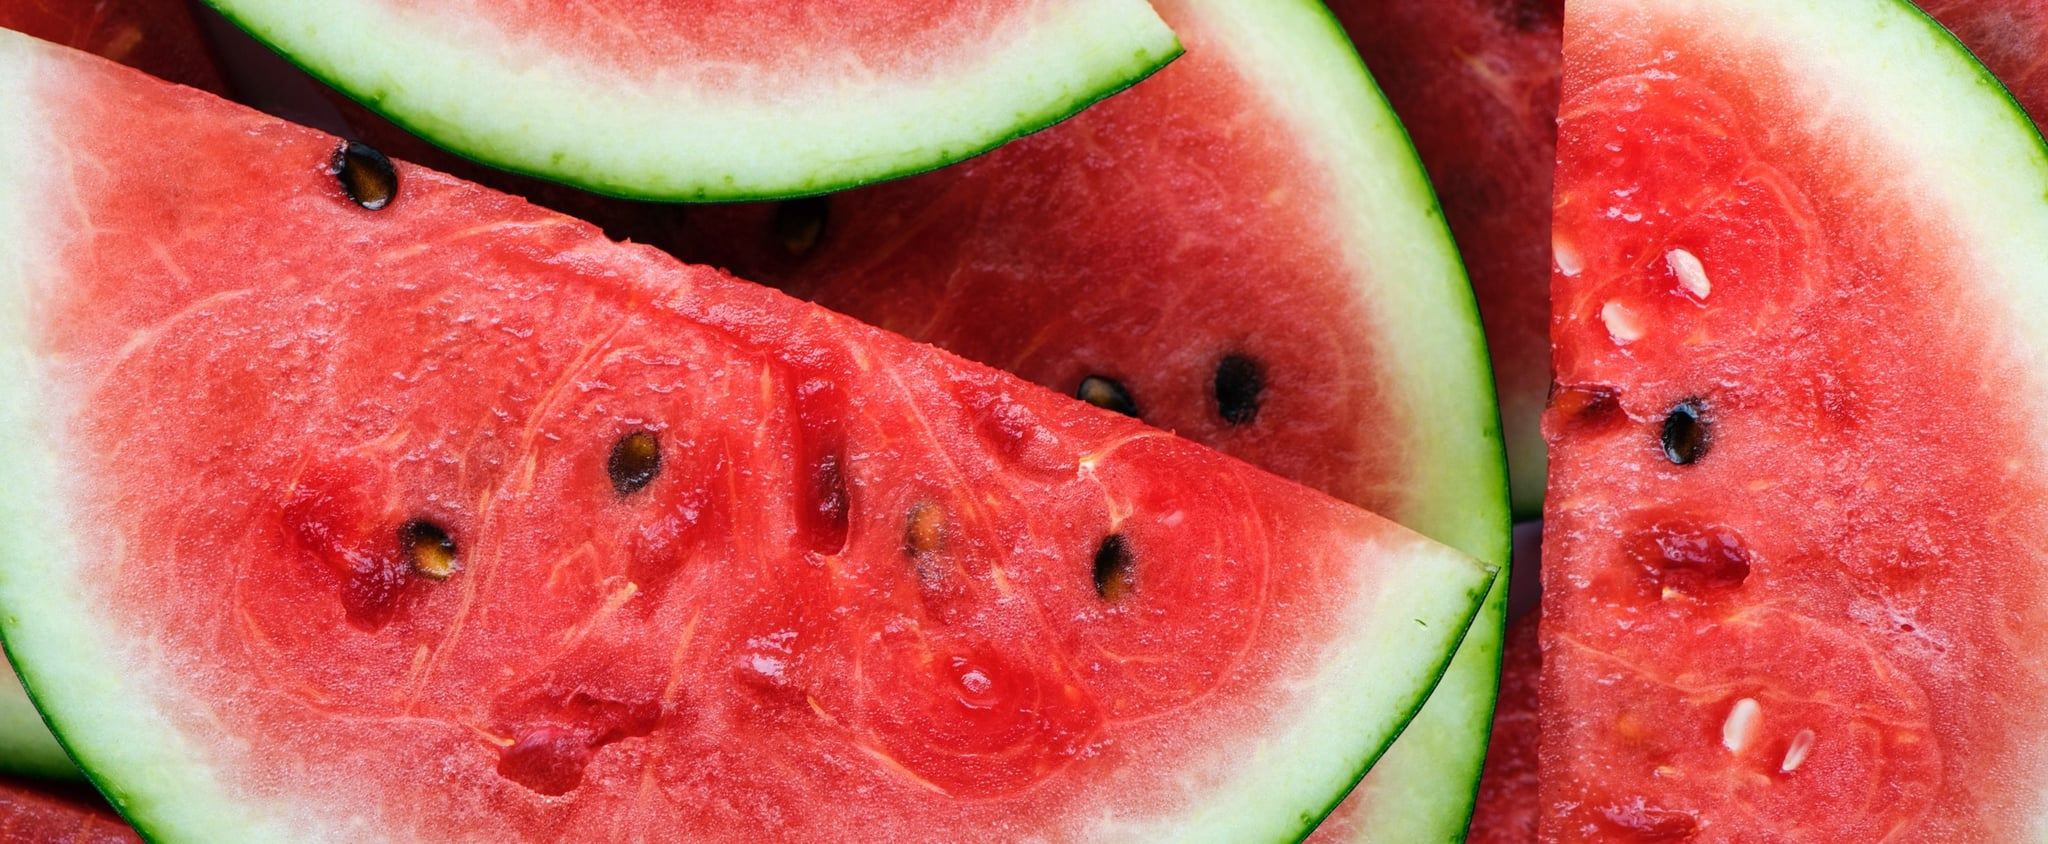 Worst Fruits For Weight Loss